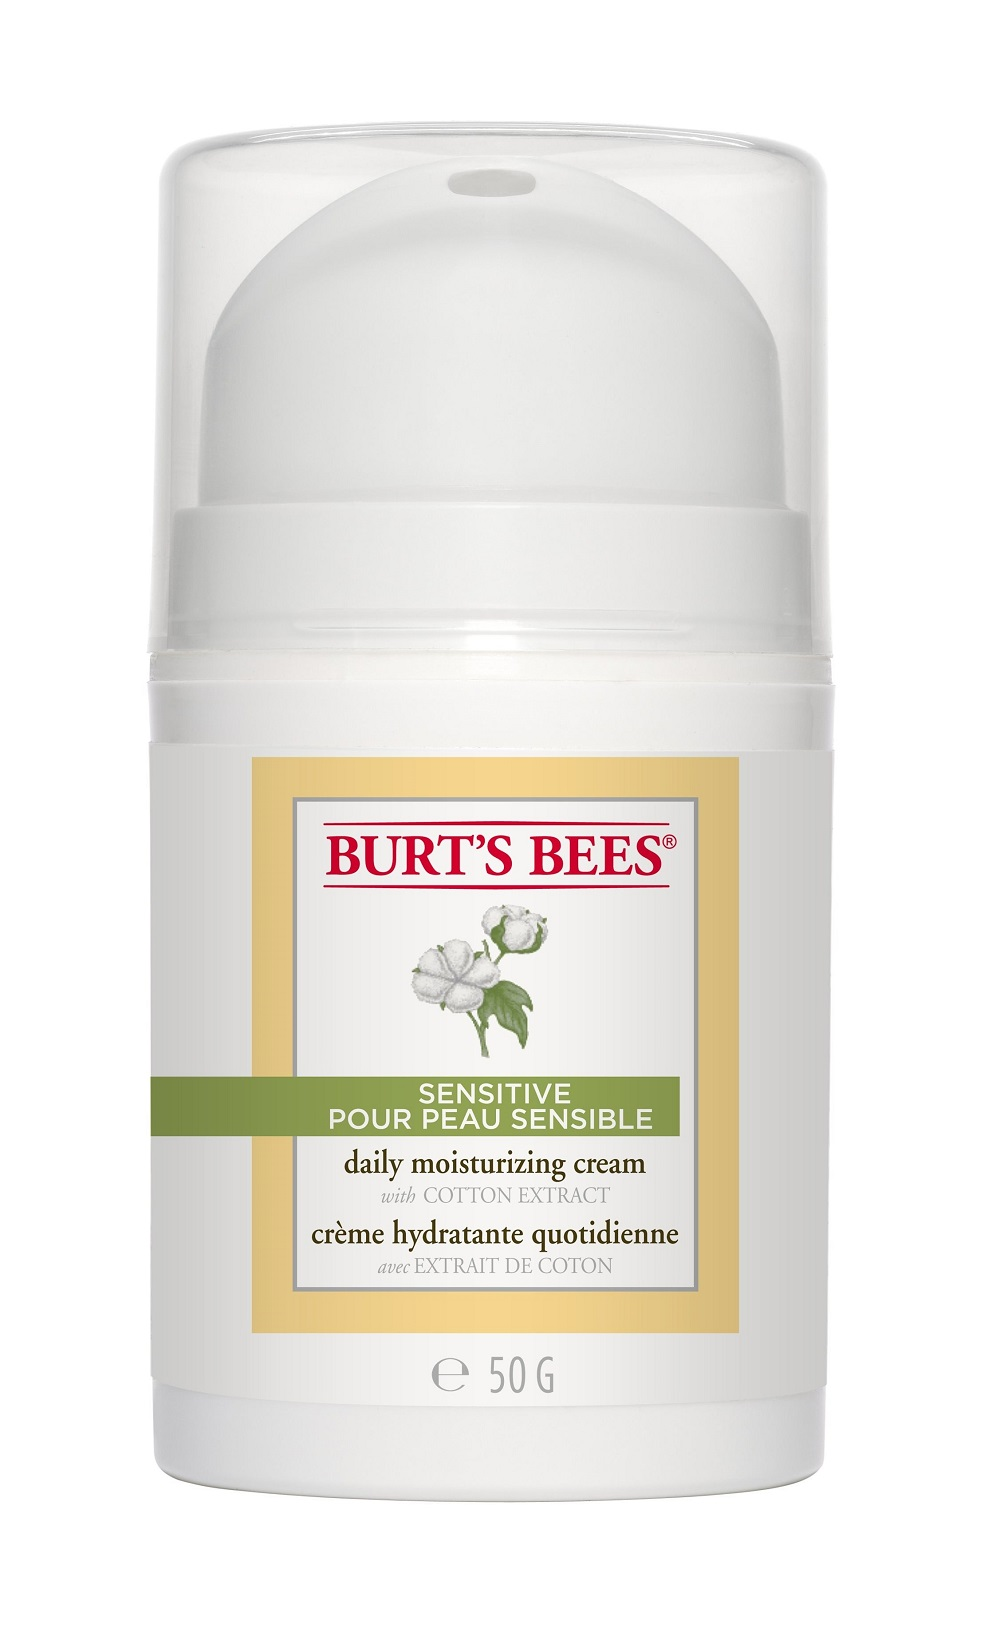 Burt's Bees Sensitive Daily Moisturizing Cream 50g